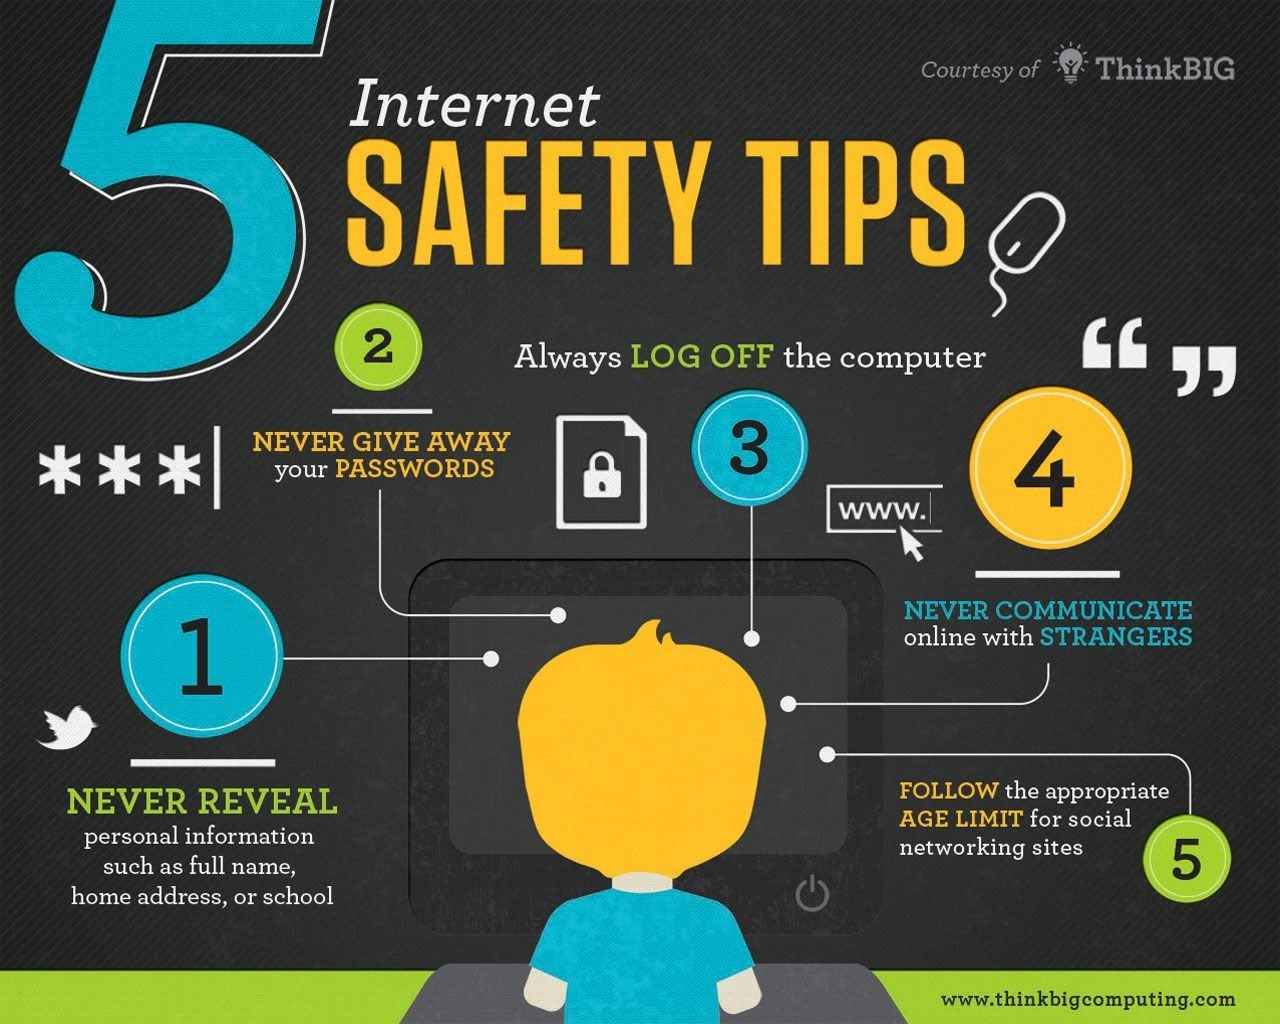 Five internet safety tips for teachers keeping their students safe online.